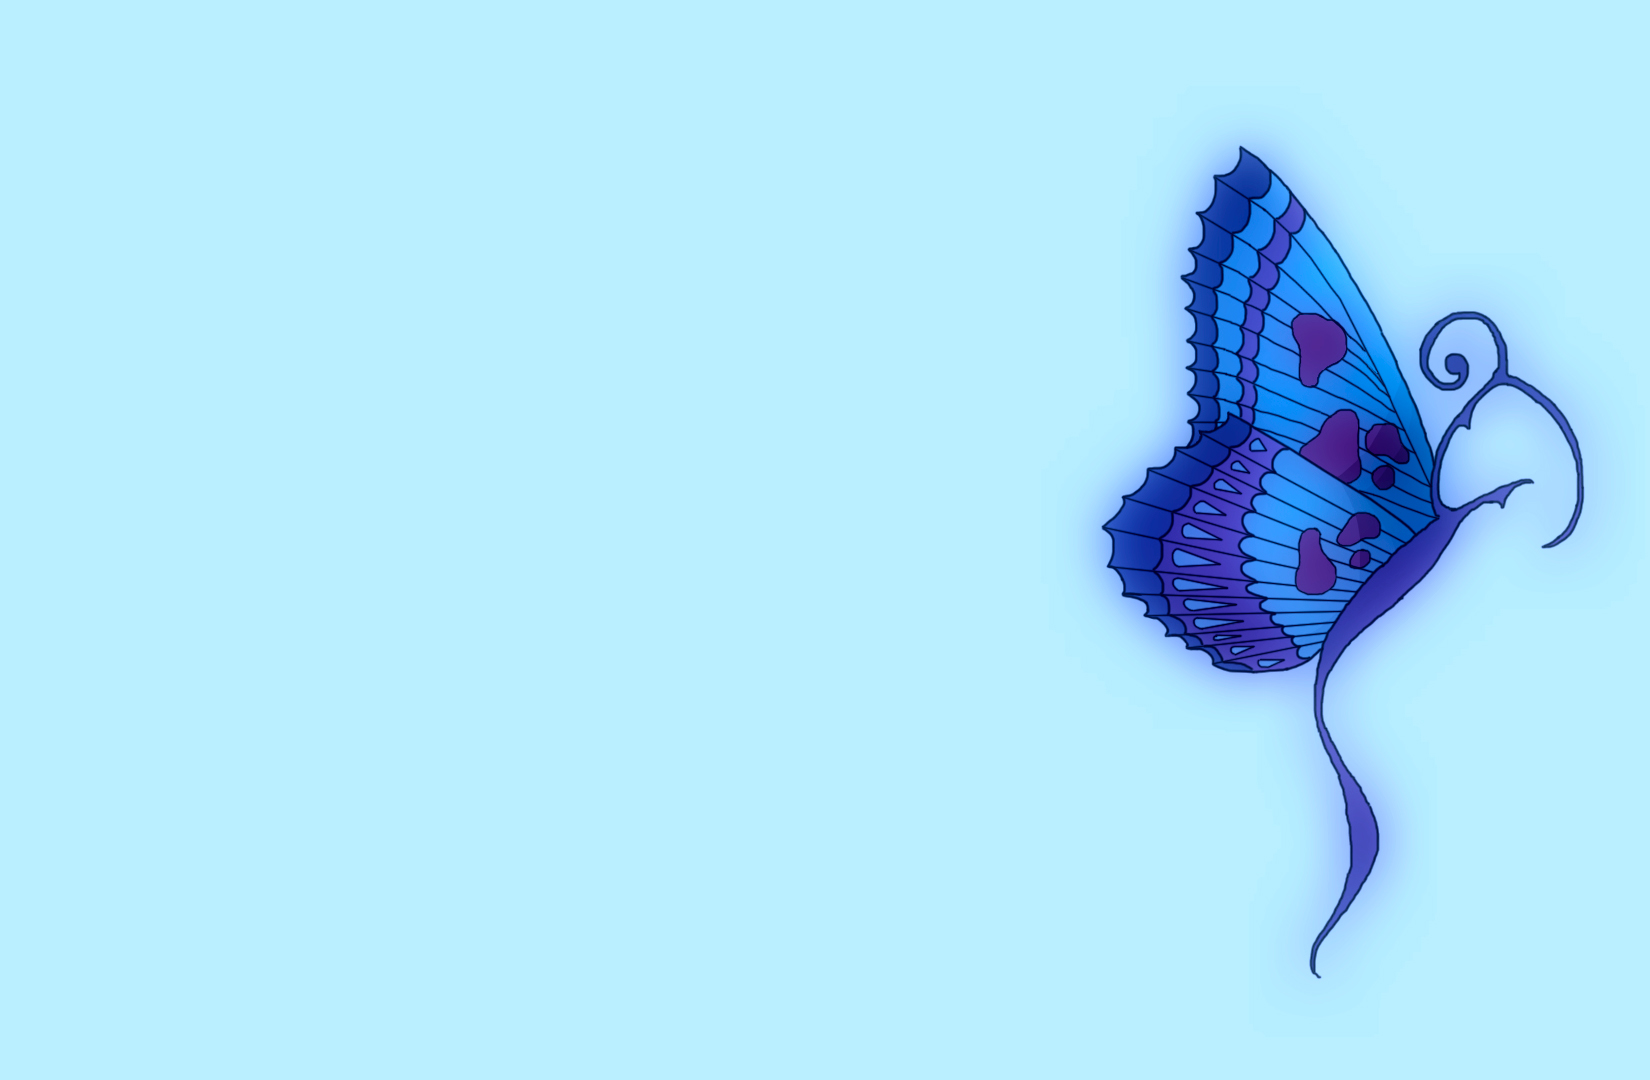 Blue Butterfly Wallpaper 10791 Hd Wallpapers in Cute   Imagescicom 1650x1080